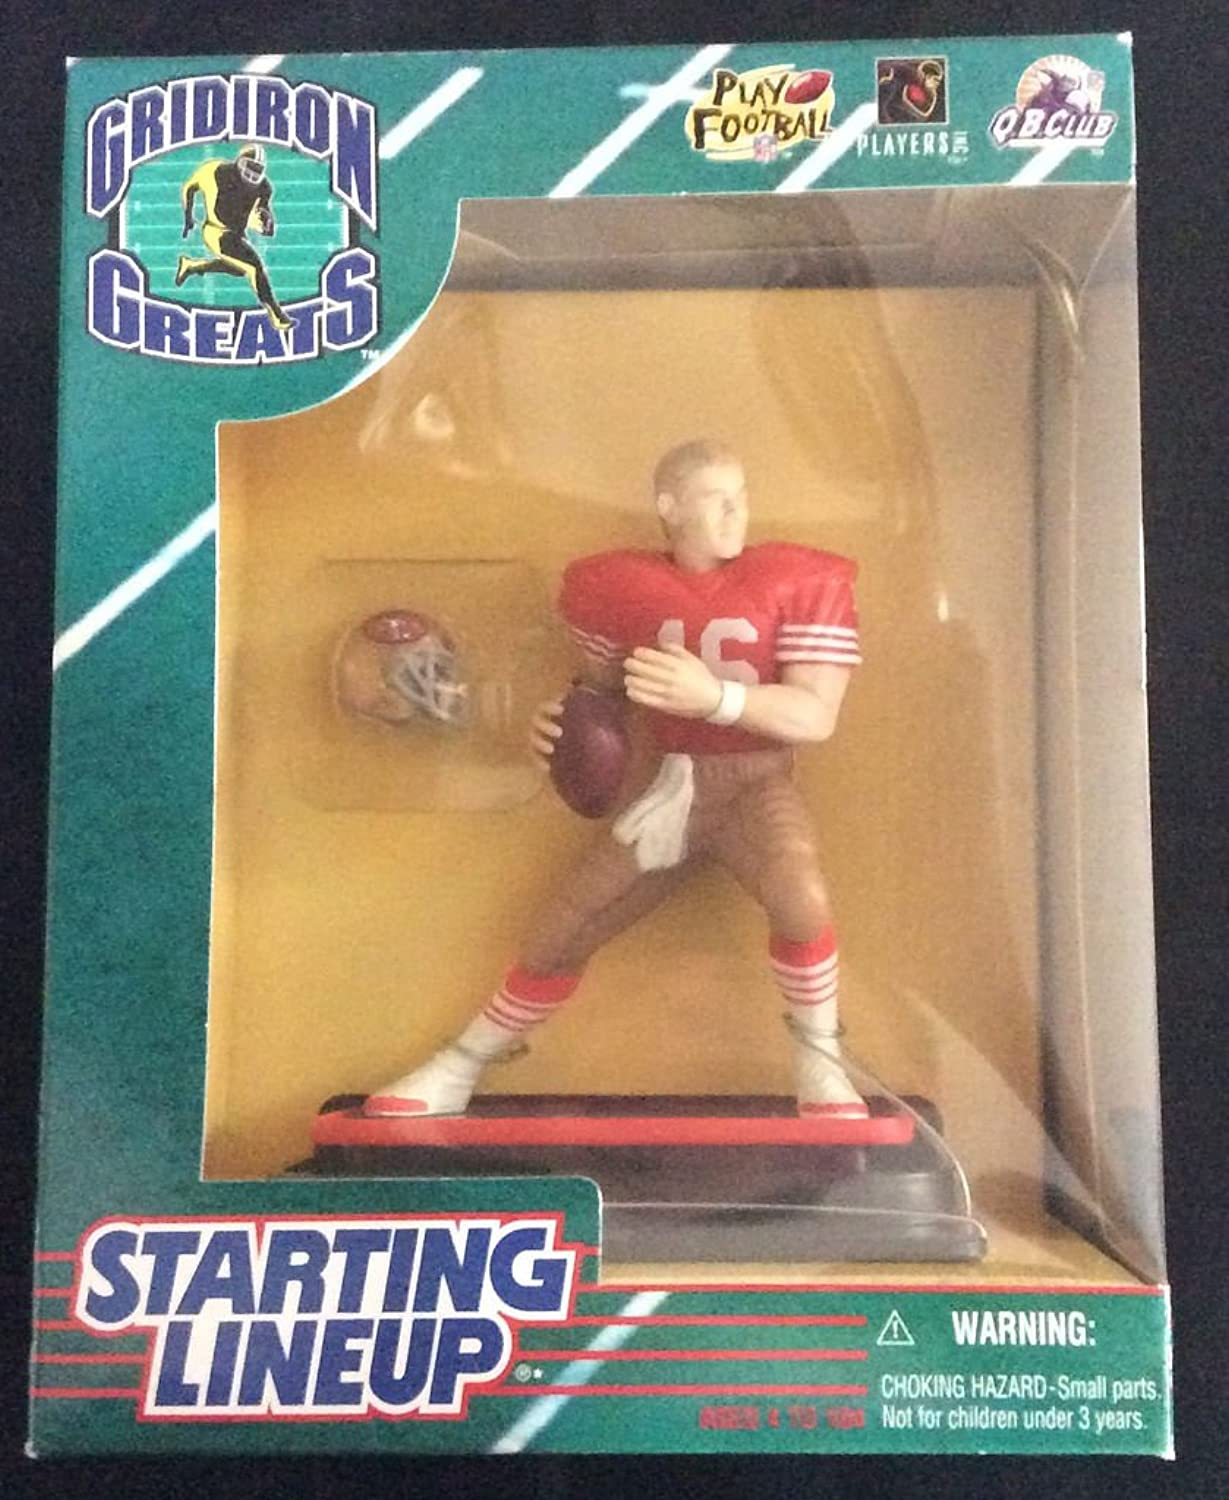 1997 NFL Starting Lineup Gridiron Greats  Joe Montana  San Francisco 49ers by Starting Line Up